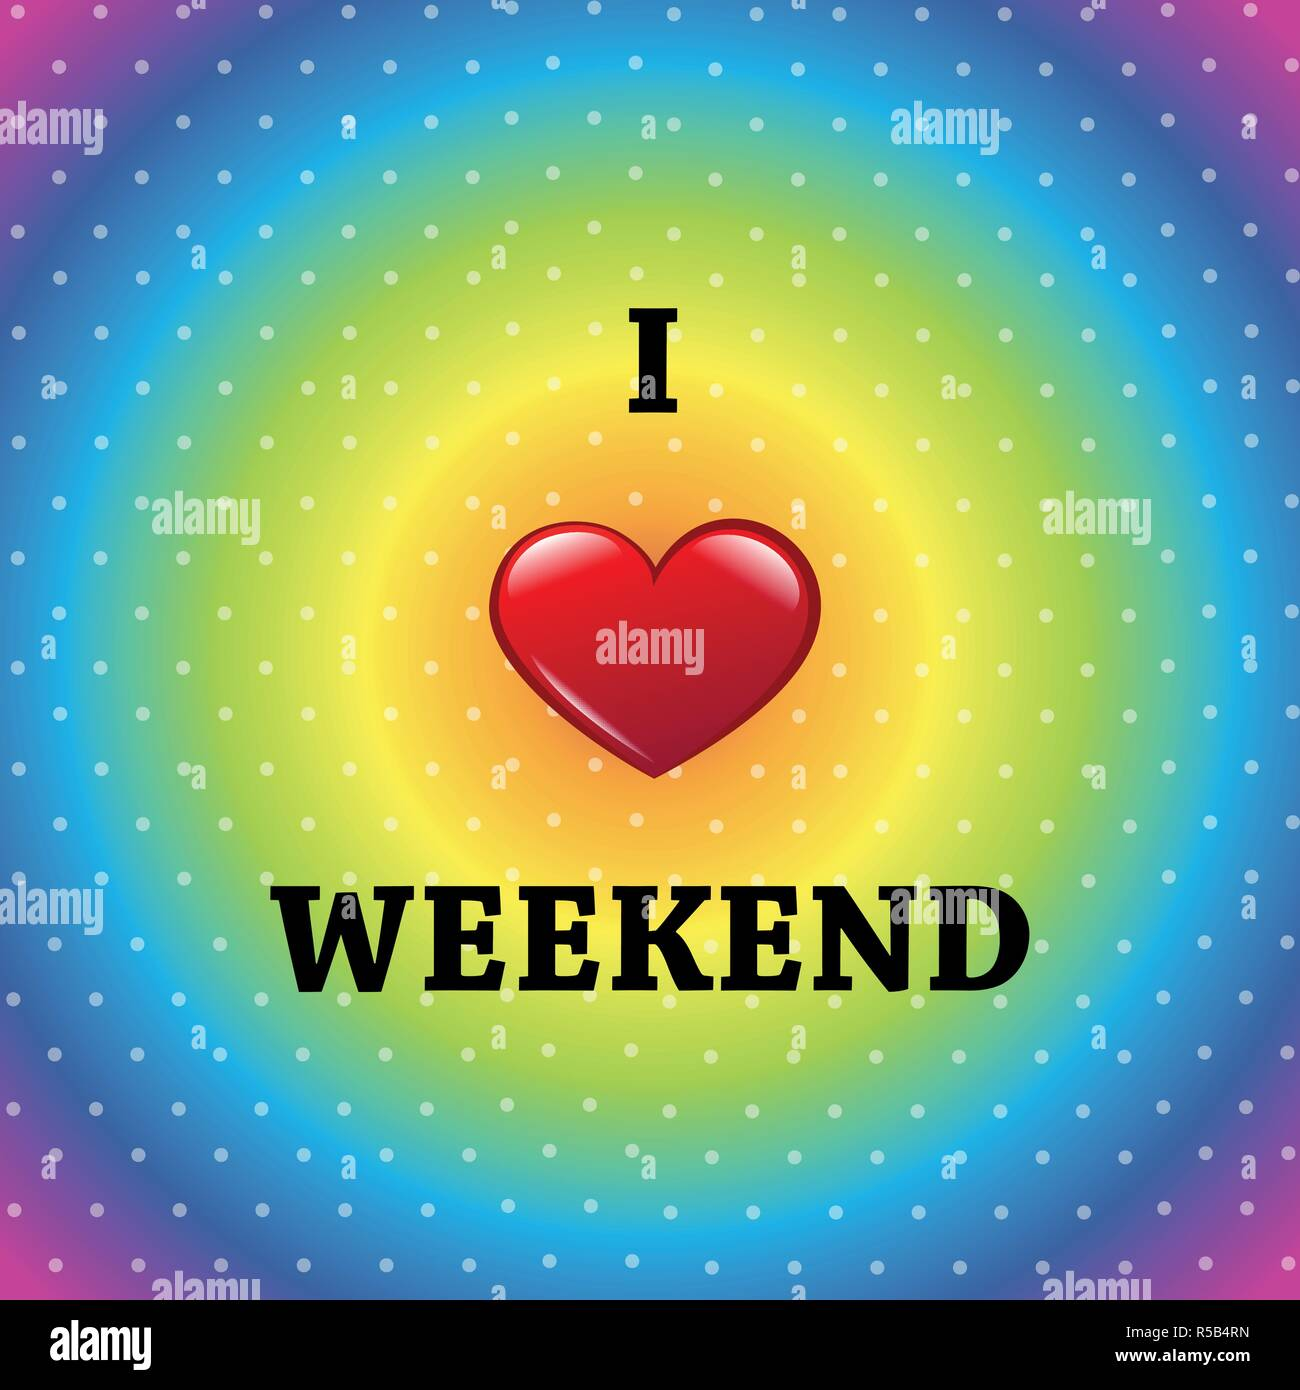 I love weekend colorful background vector illustration EPS10 - Stock Image